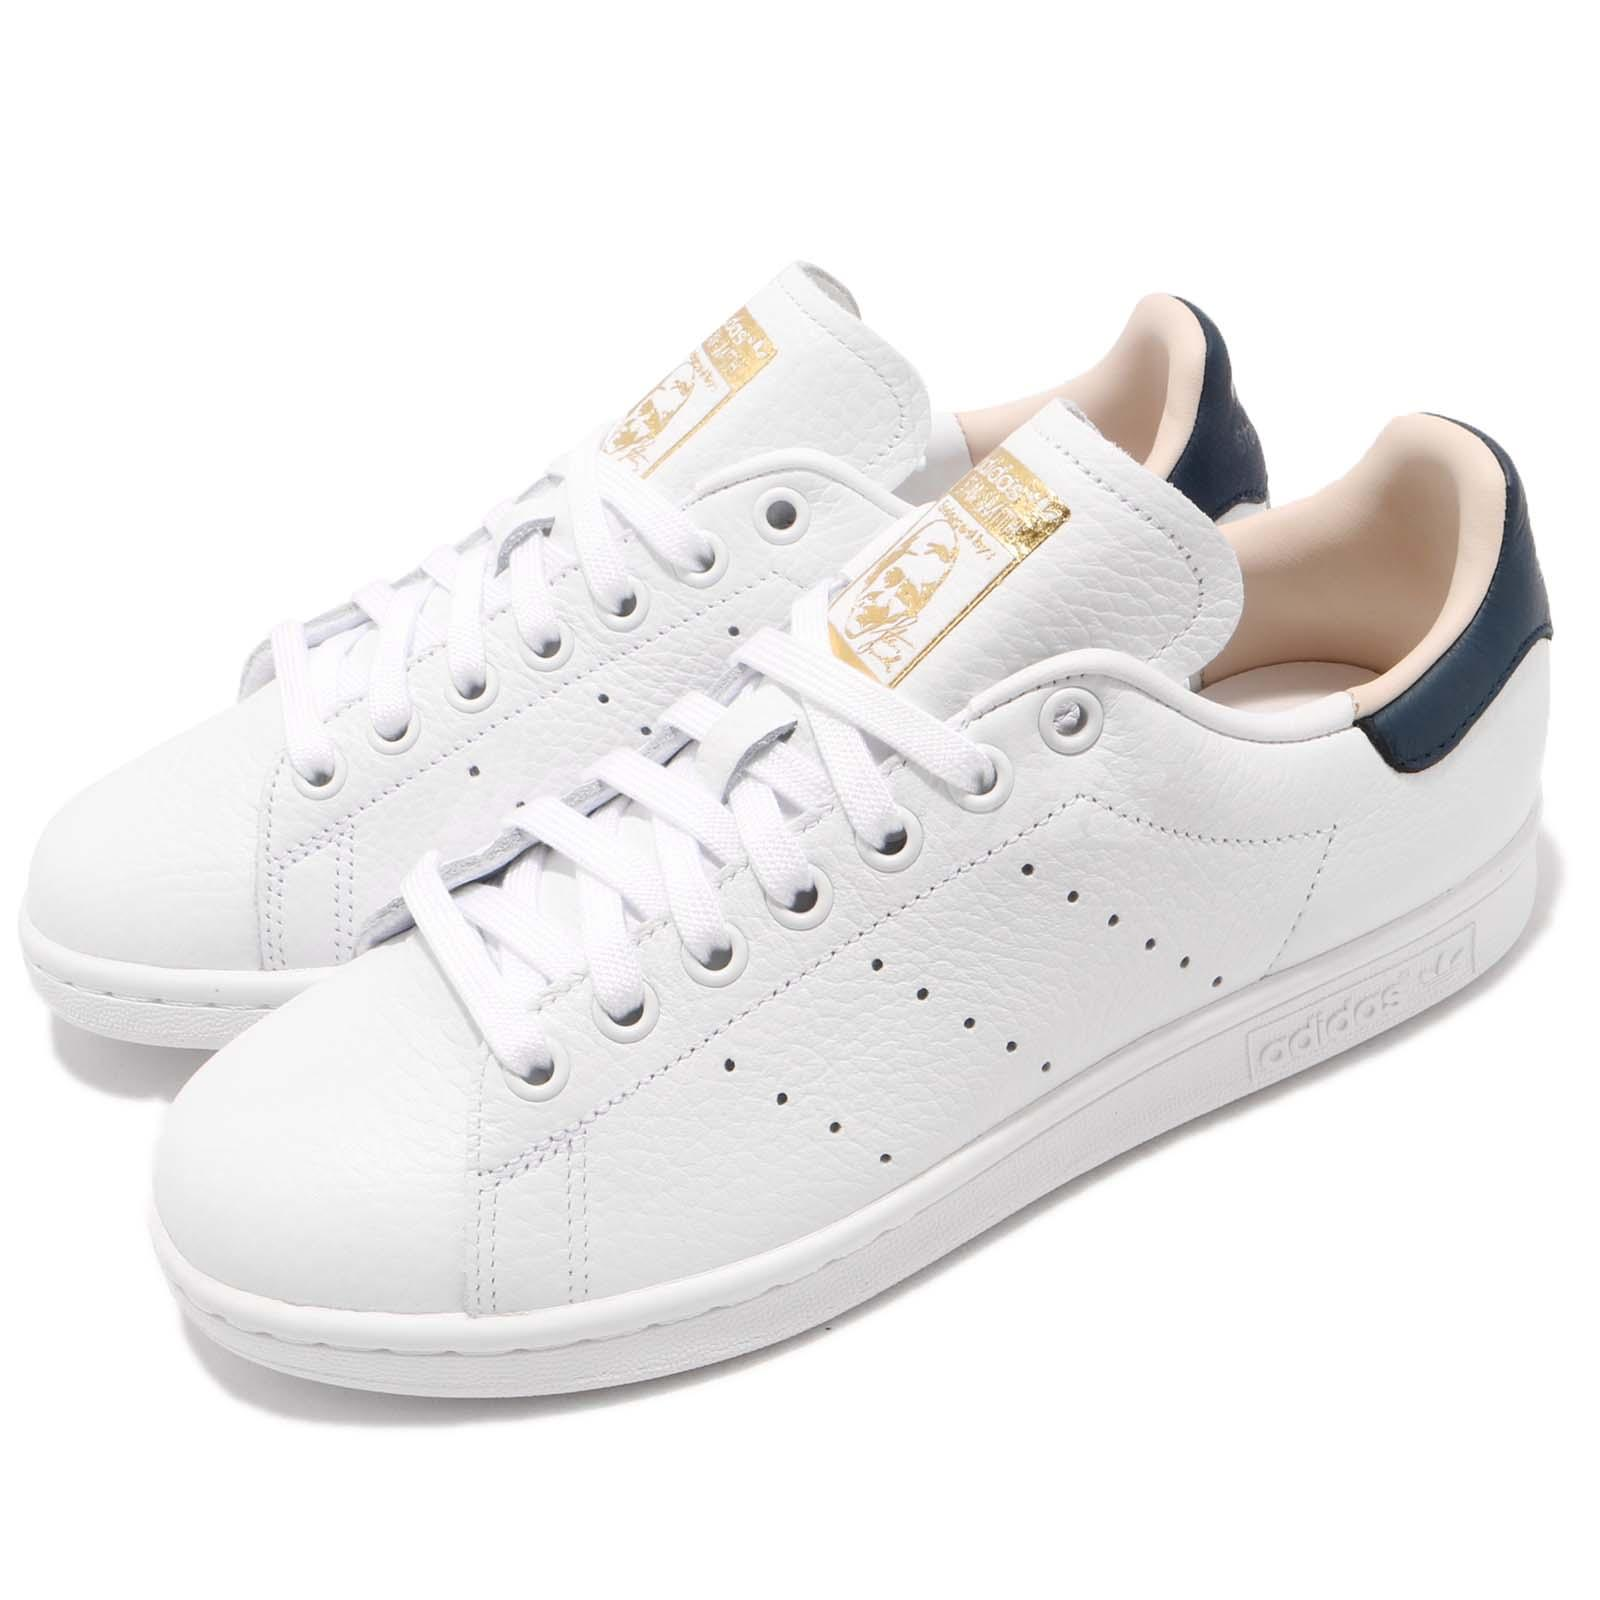 d5e1c32362a6 Details about adidas Originals Stan Smith White Collegiate Navy Men Shoes  Sneakers CQ2201